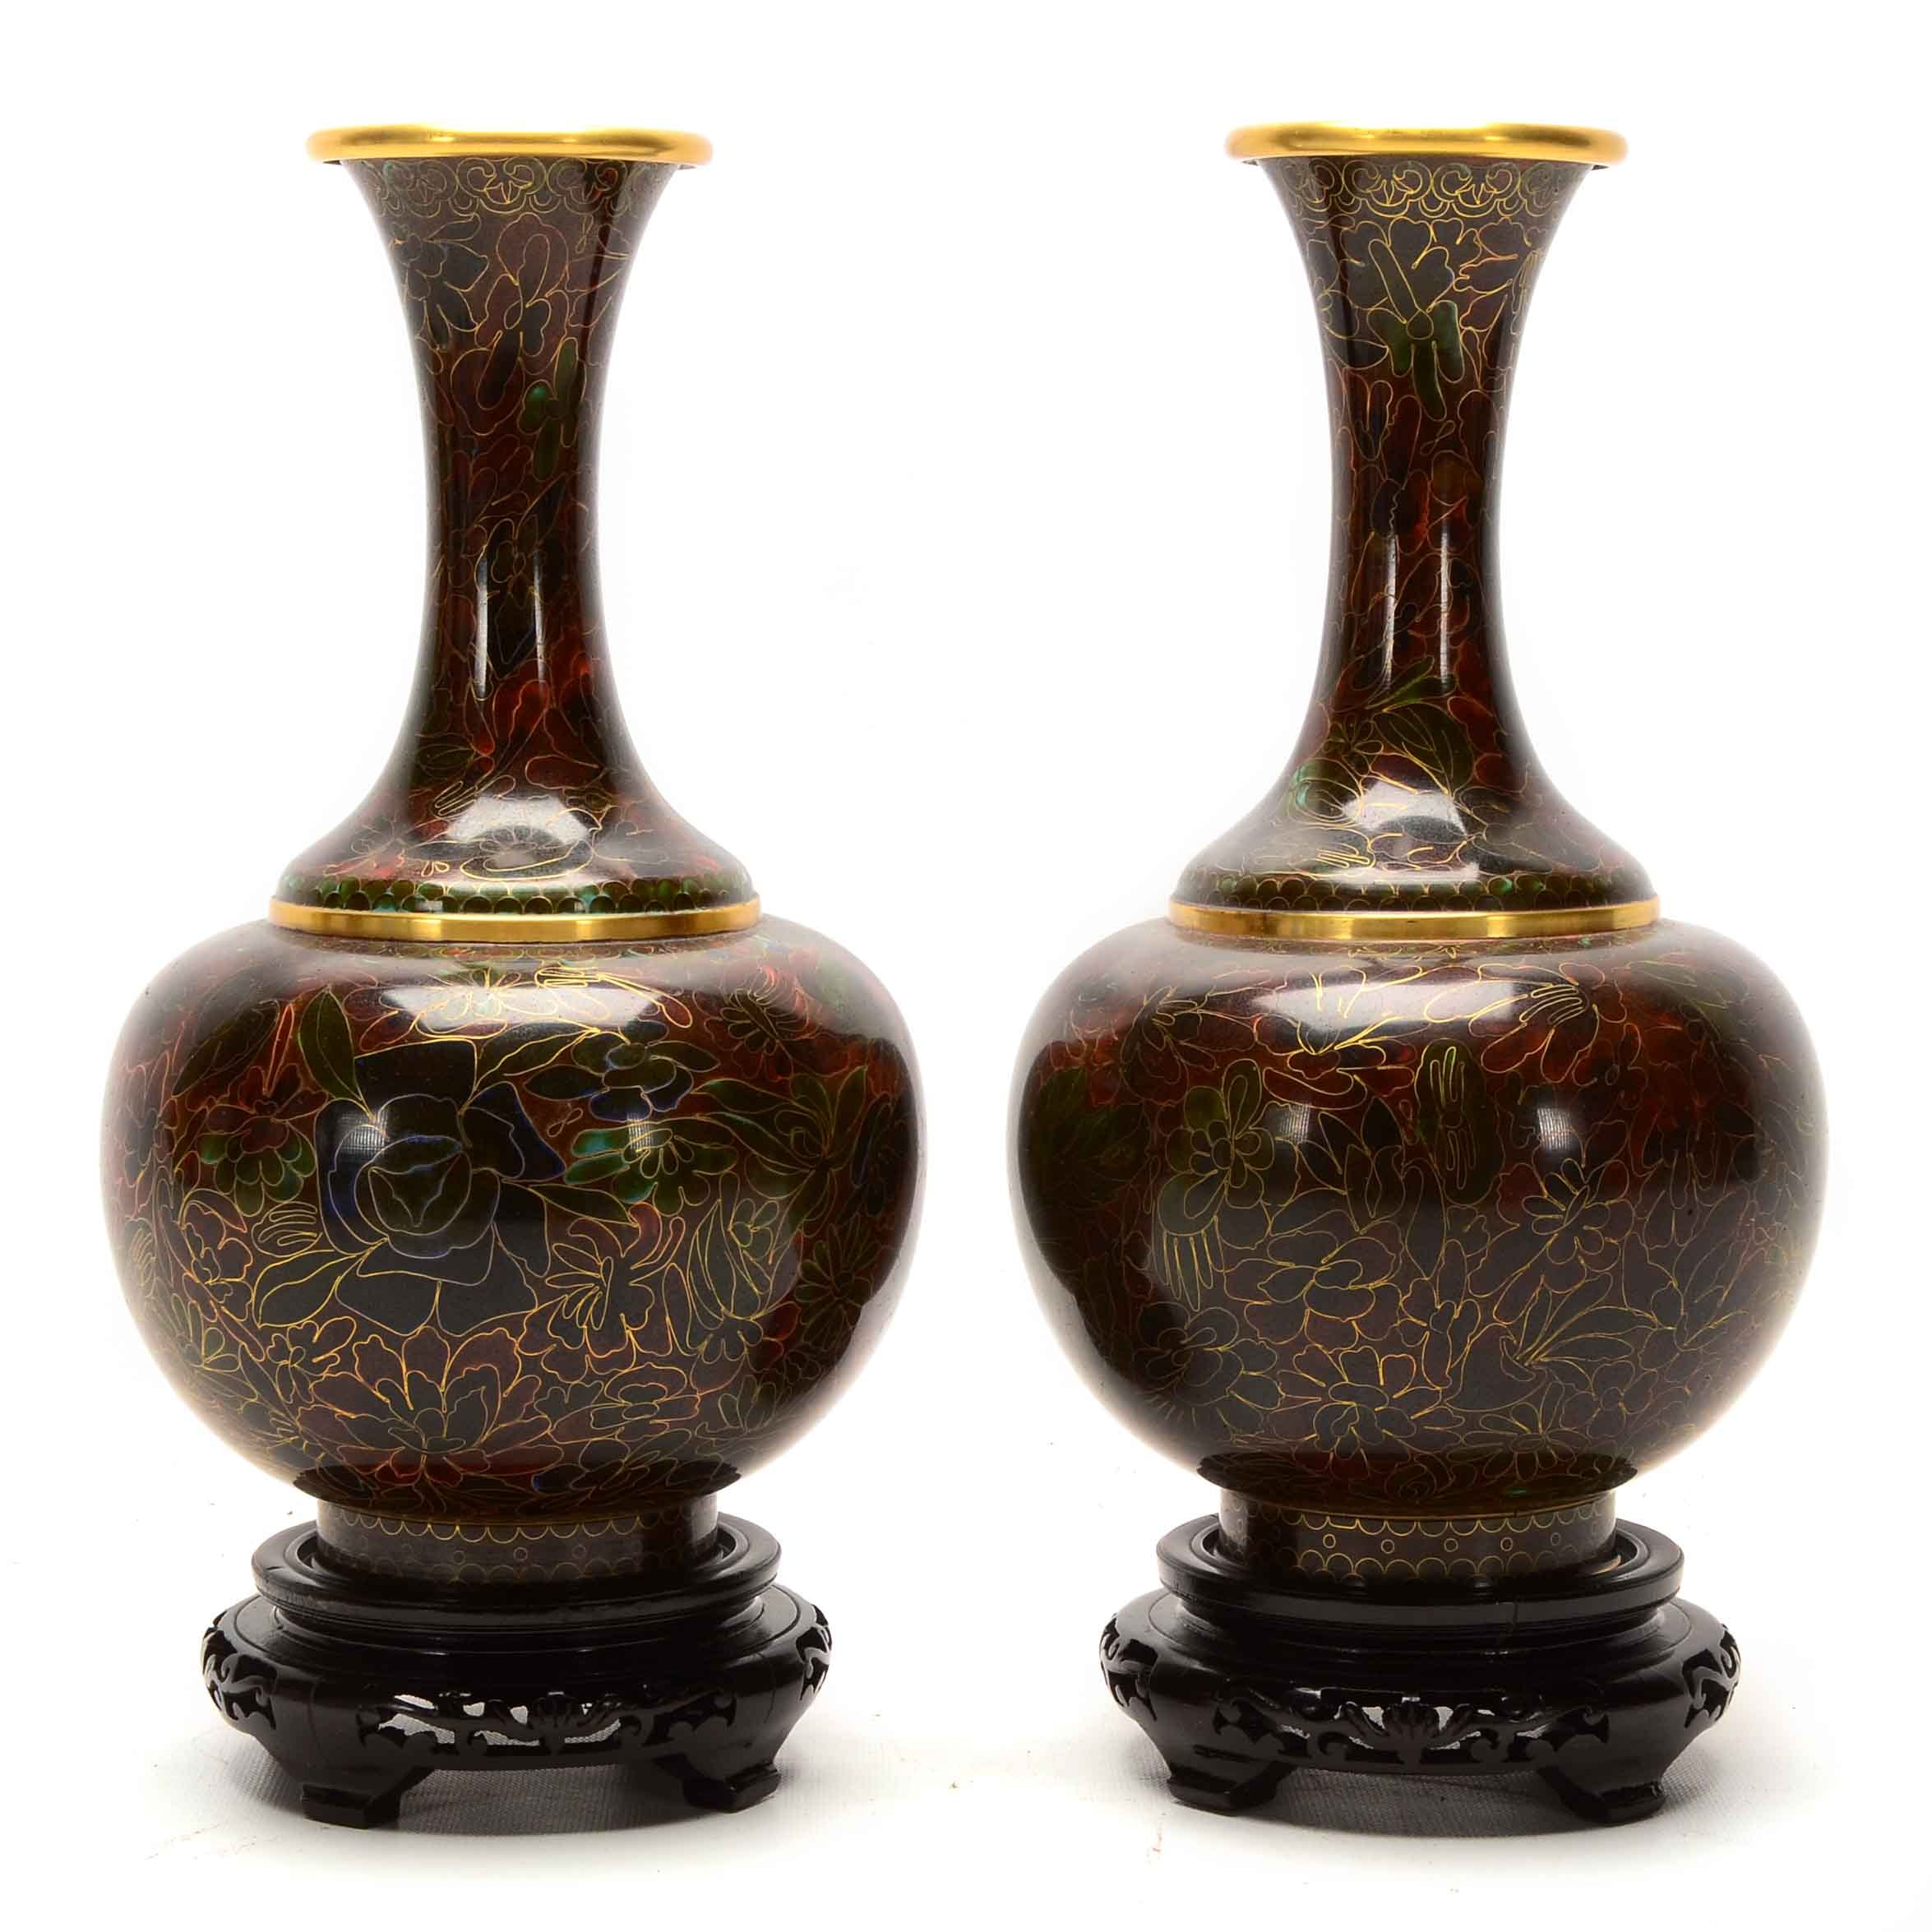 Pair of Chinese Cloisonné Vases with Stands